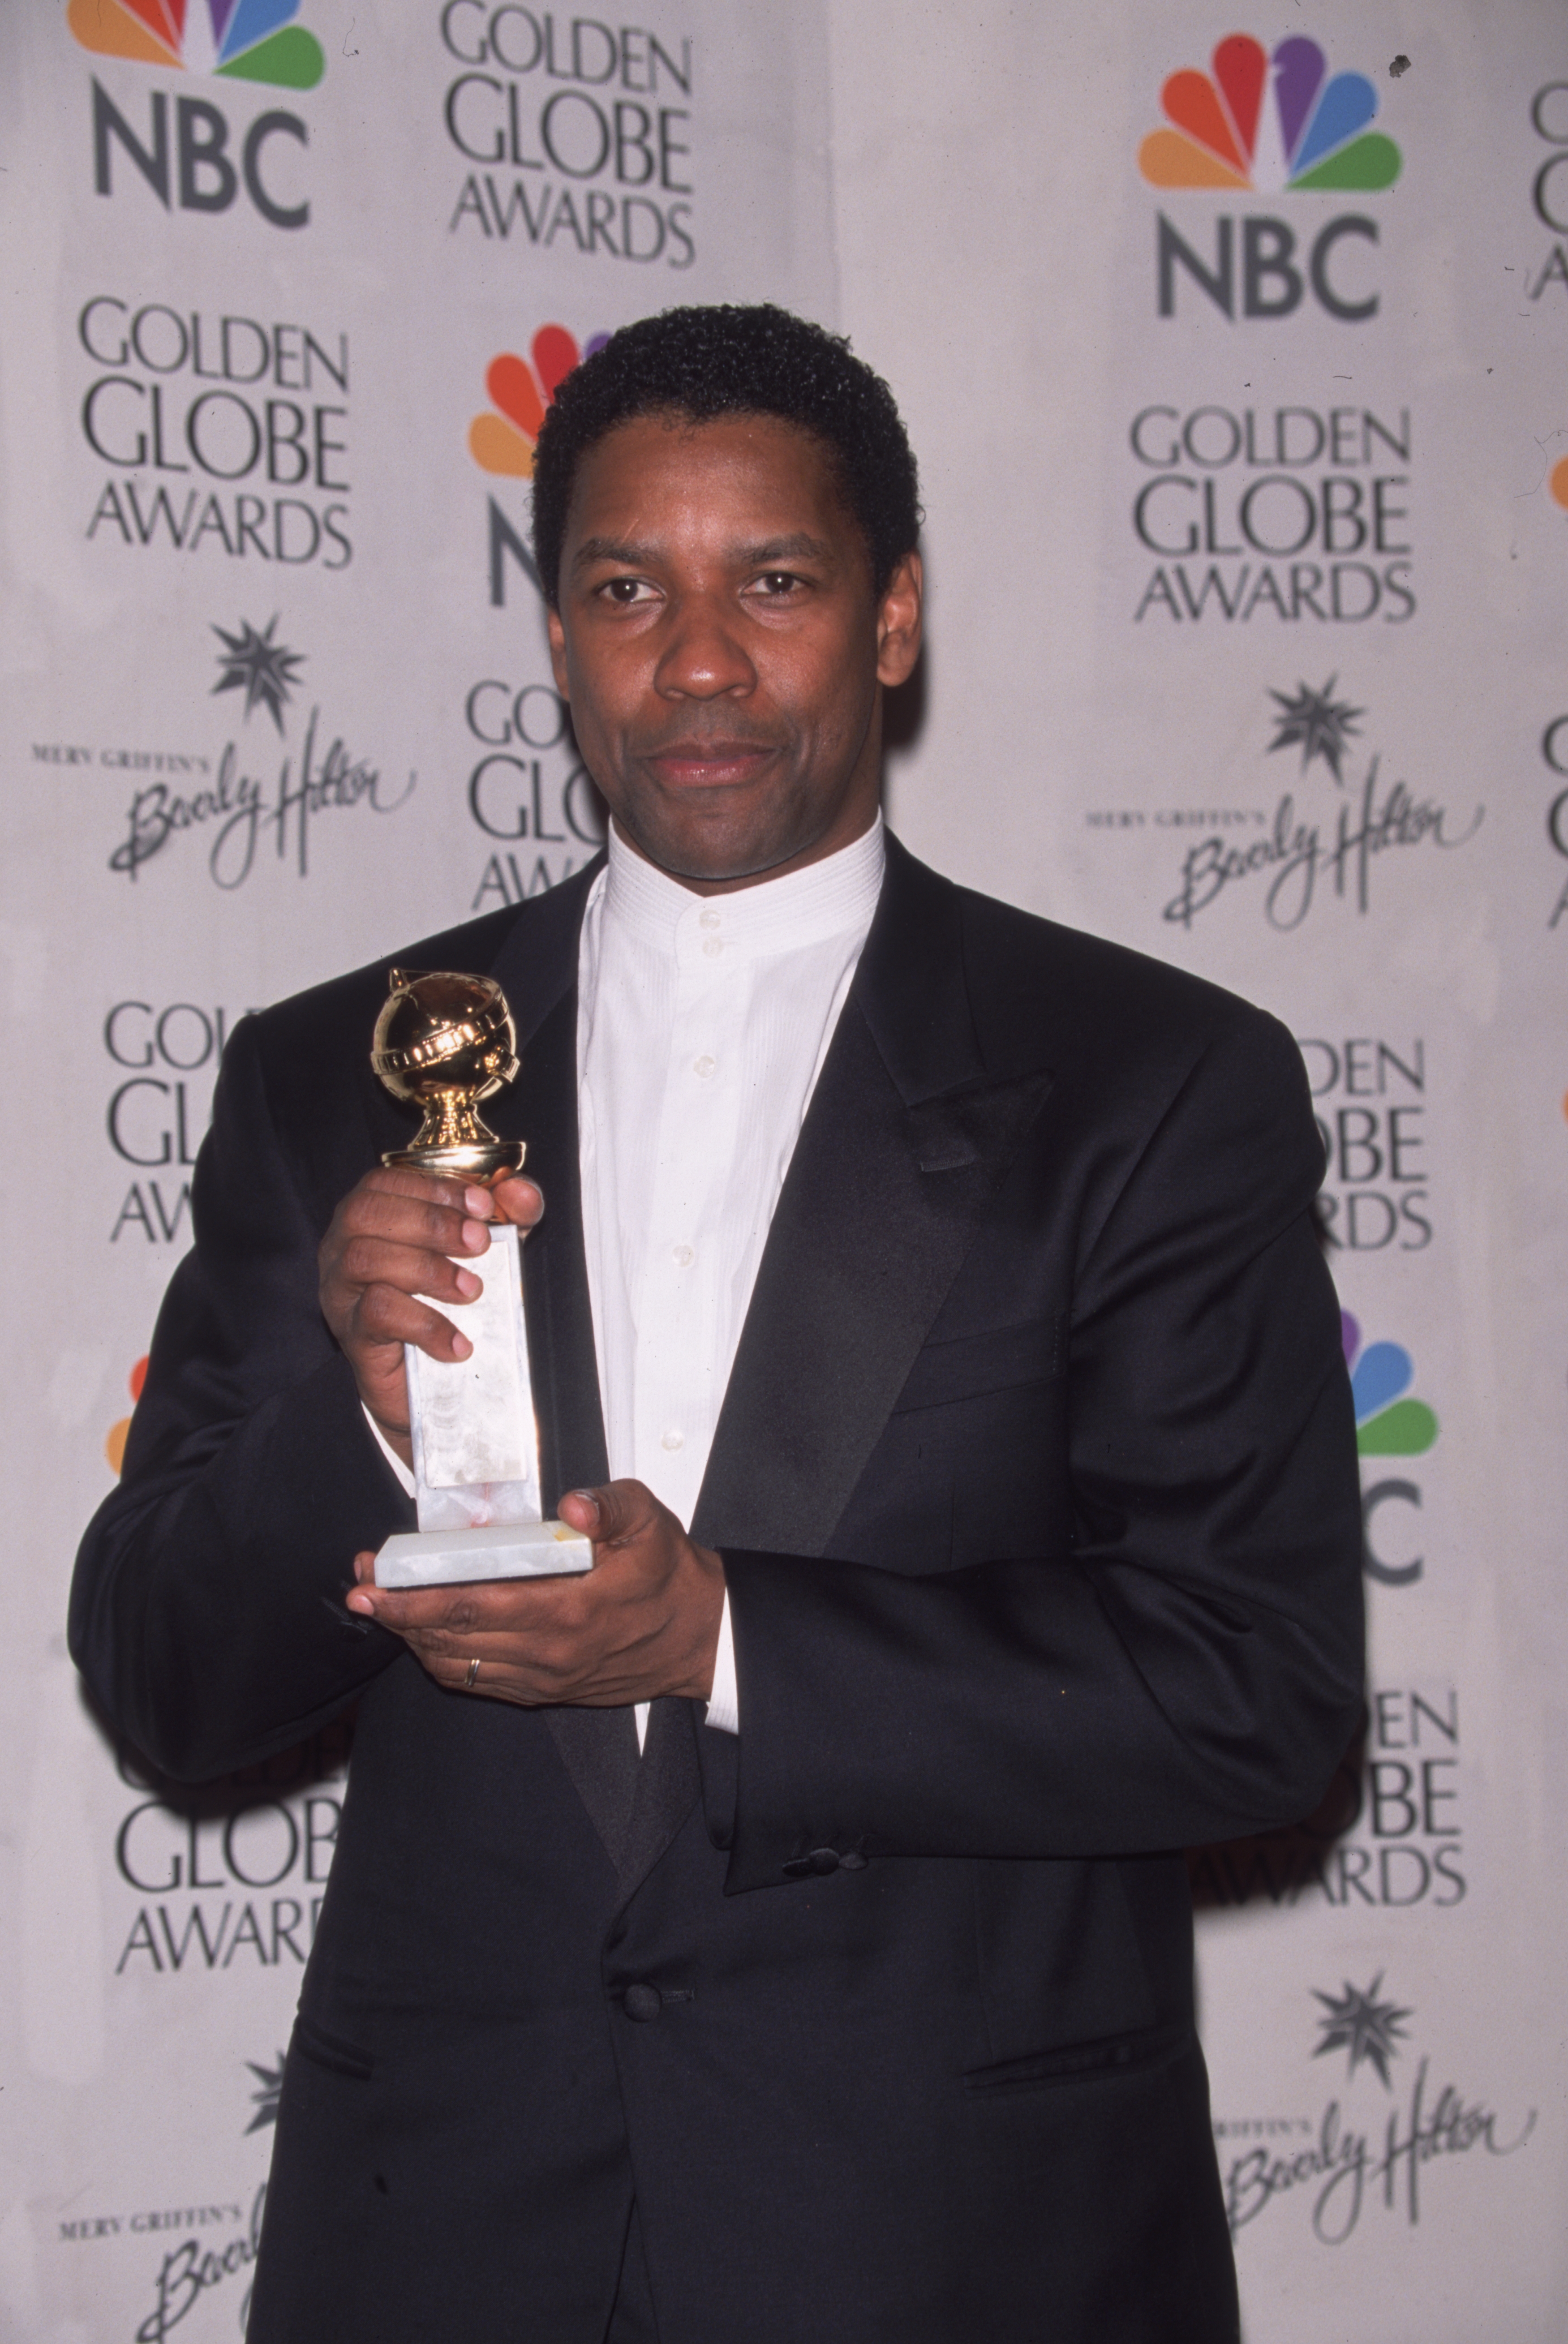 Denzel Washington at an event for The Hurricane (1999)